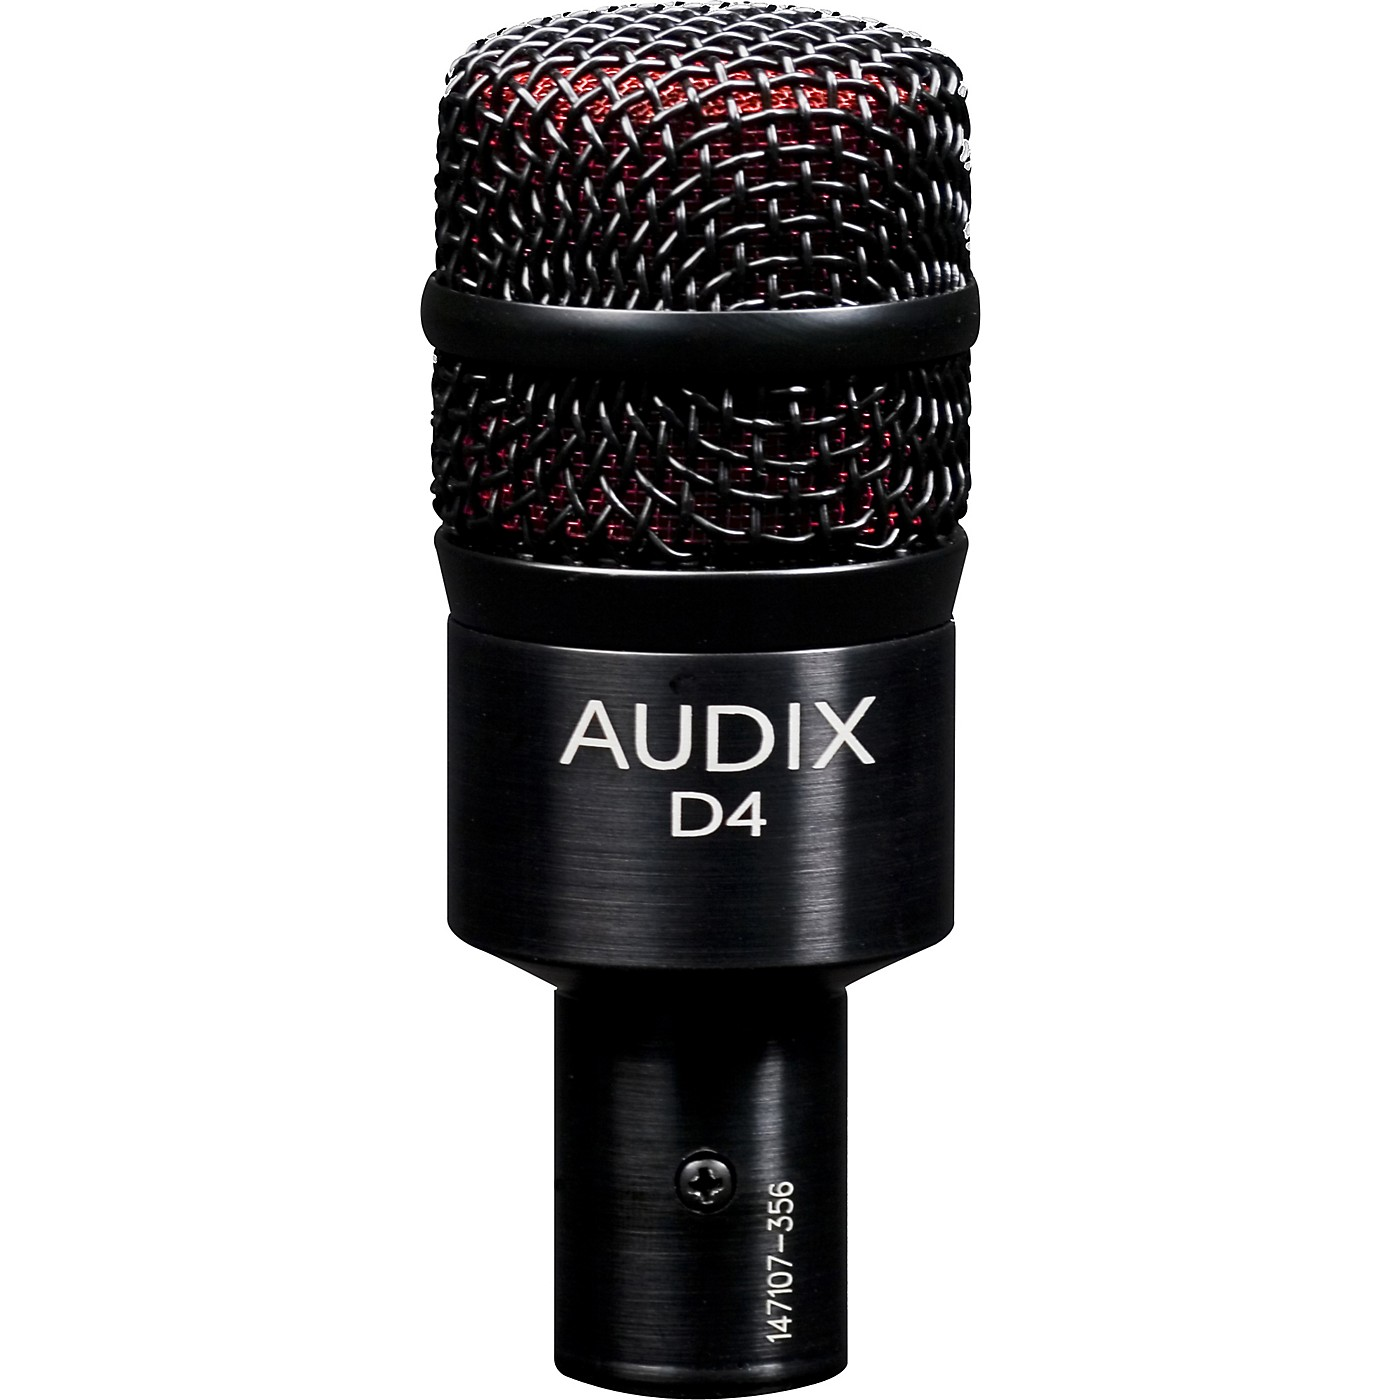 Audix D4 Dynamic Microphone thumbnail